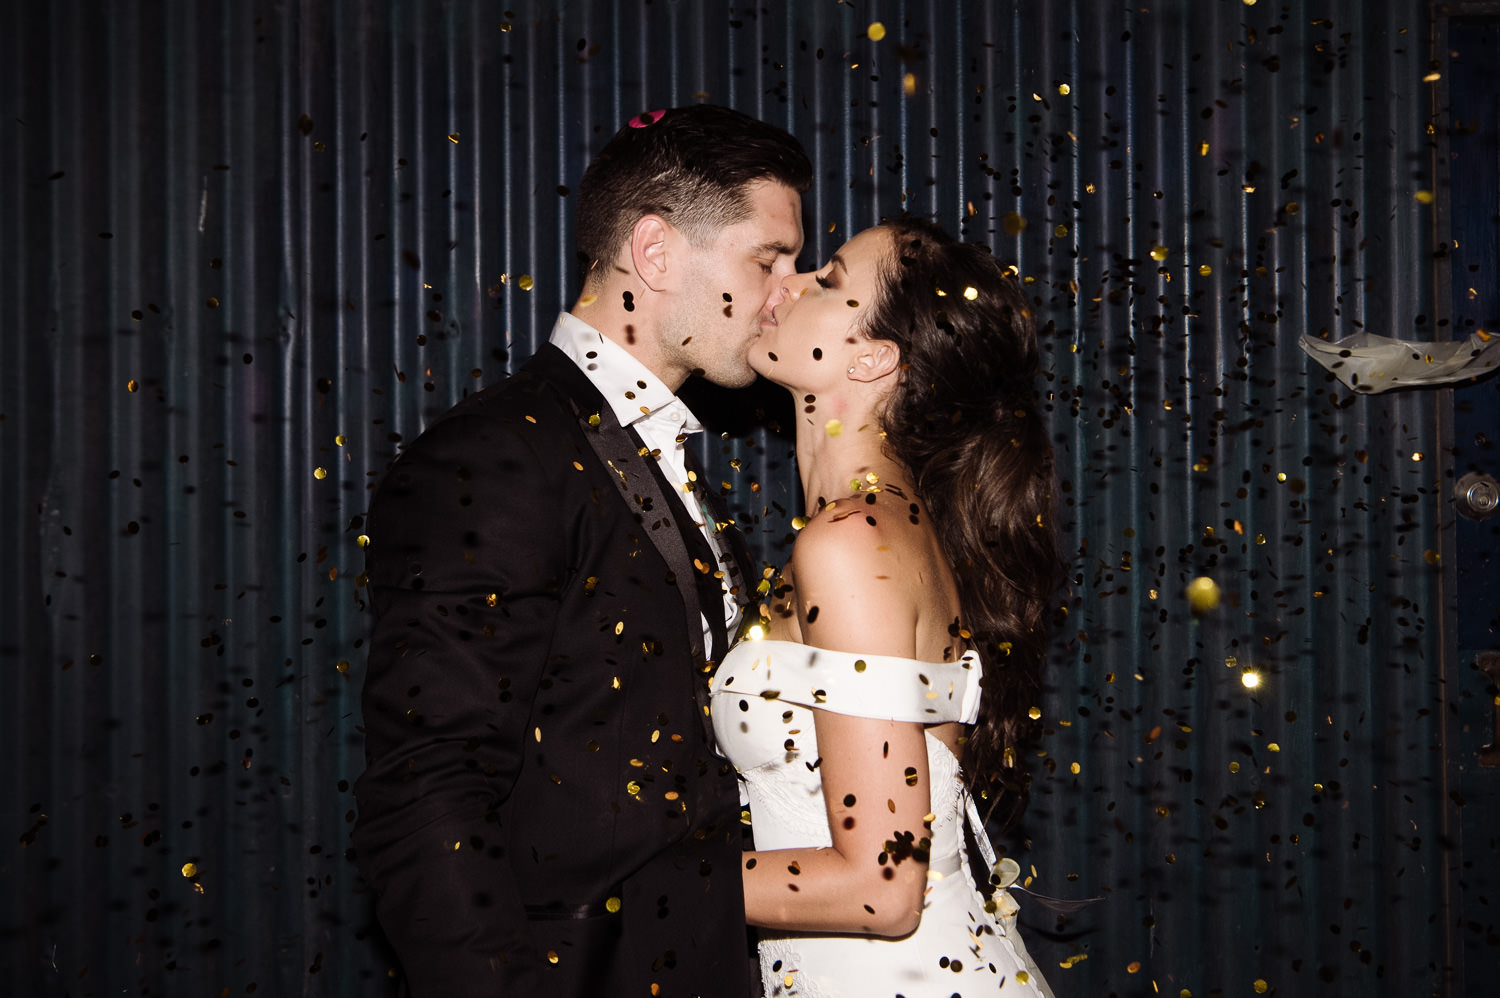 Alex + Nick - Glam celebration at Laurens Hall